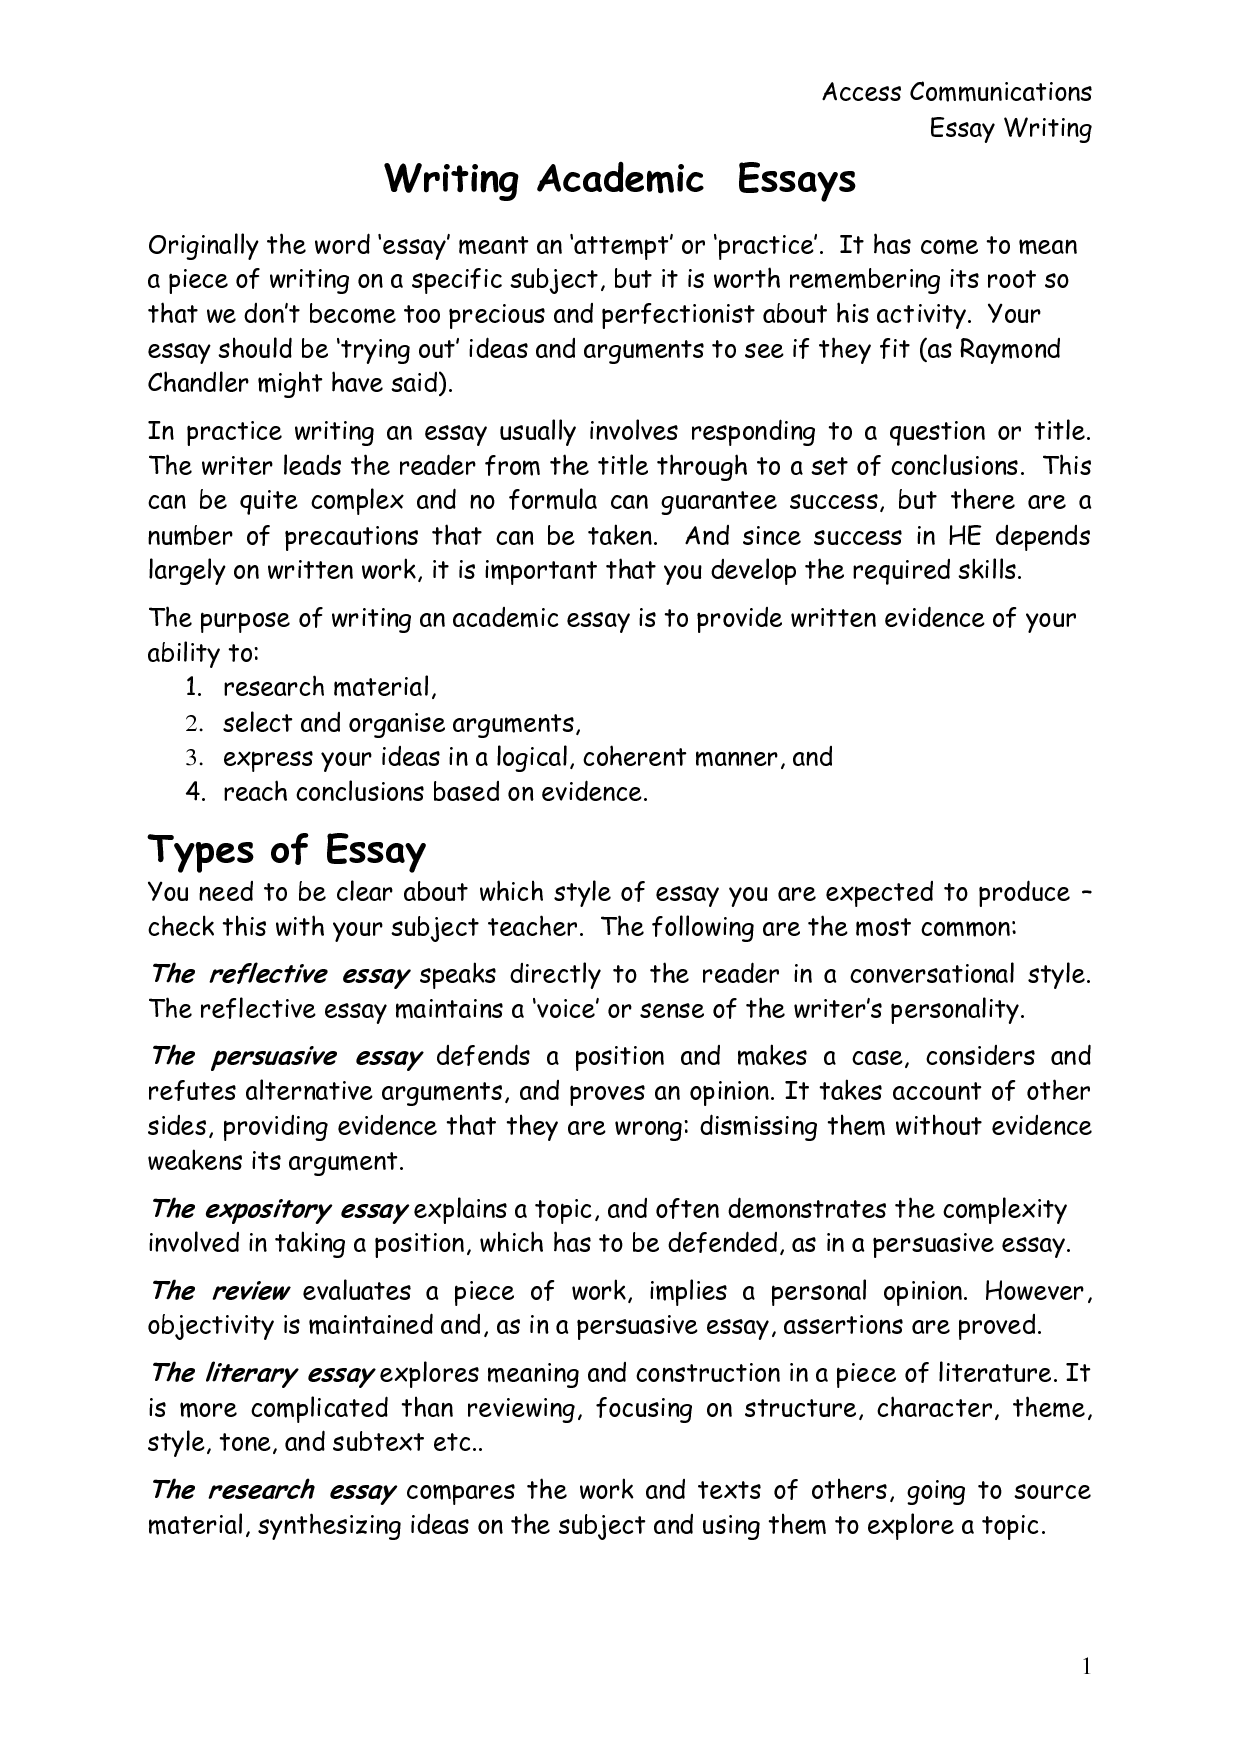 016 Reflective Essay On Academic Writings Beautiful Examples Personal Pdf About Life Format Full